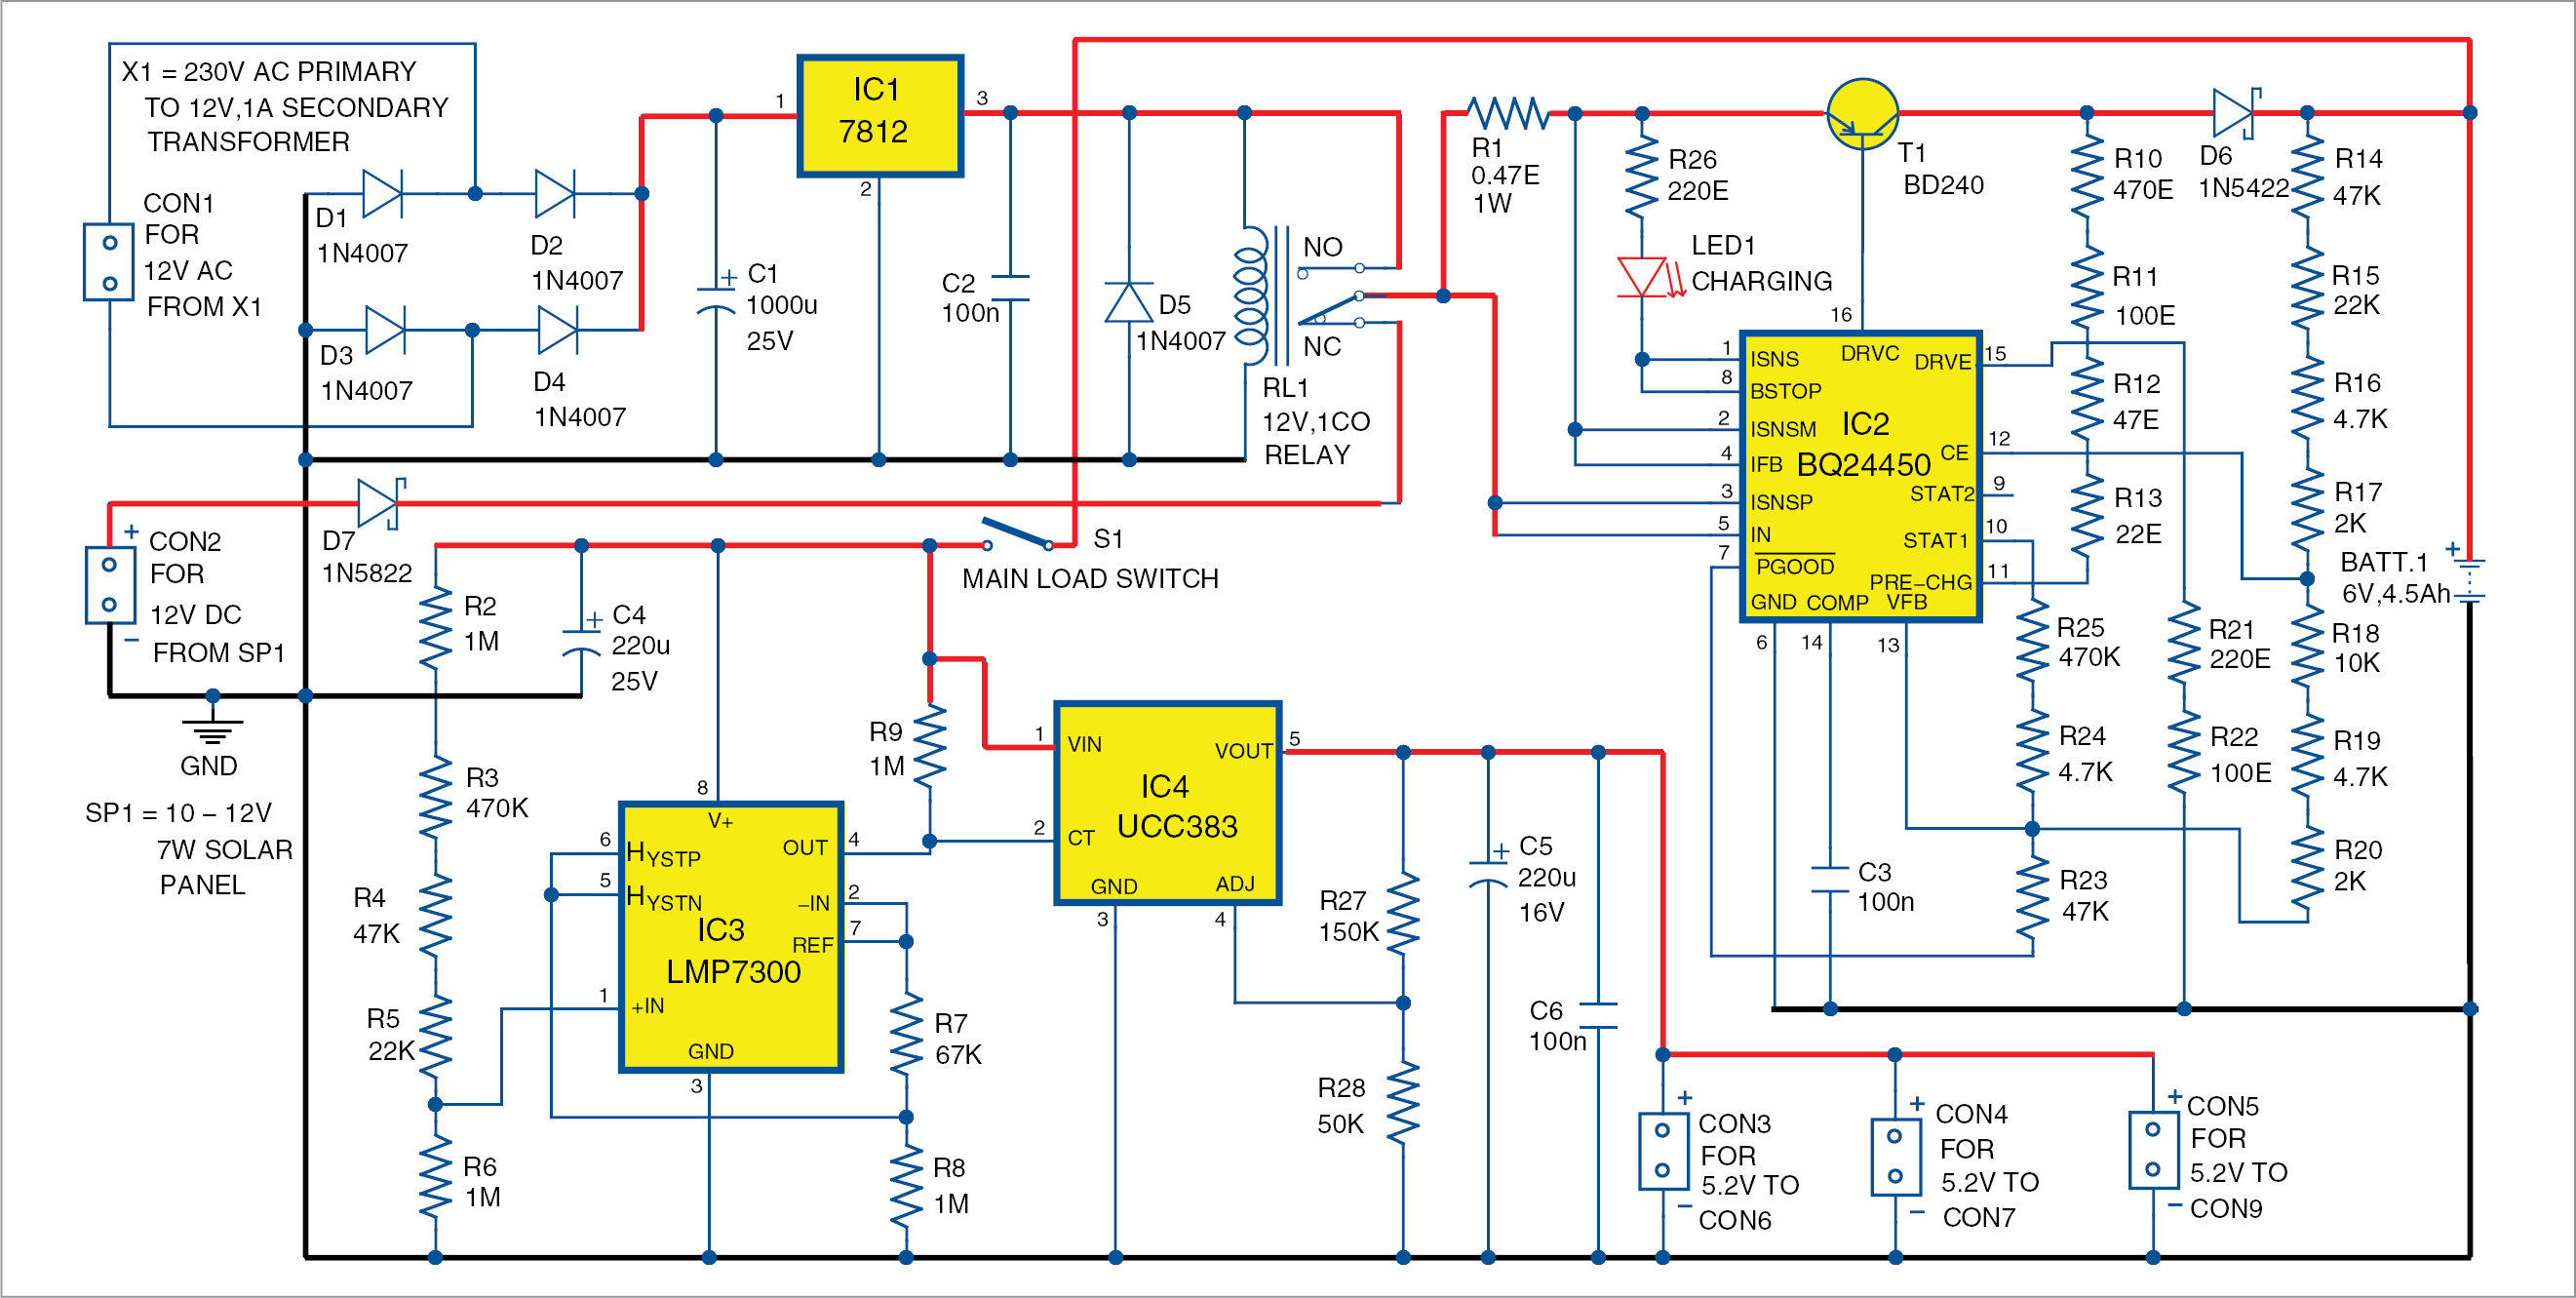 Multifunction Rechargeable Digital Clock Detailed Electronics Project Circuit Diagram With 7 Segment Display Engineering